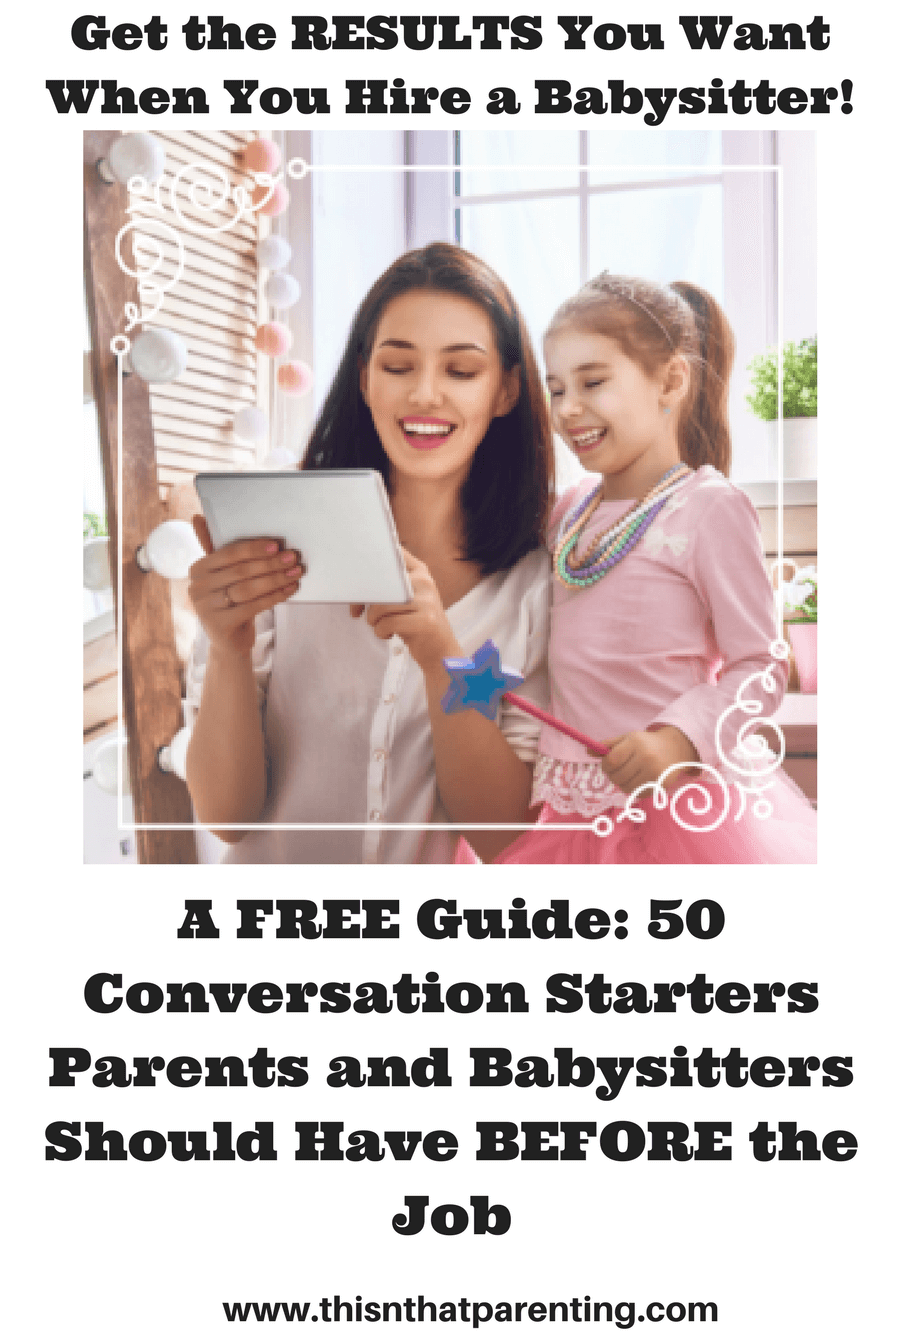 free guide 50 converstation starters parents and babysitters should have before the job